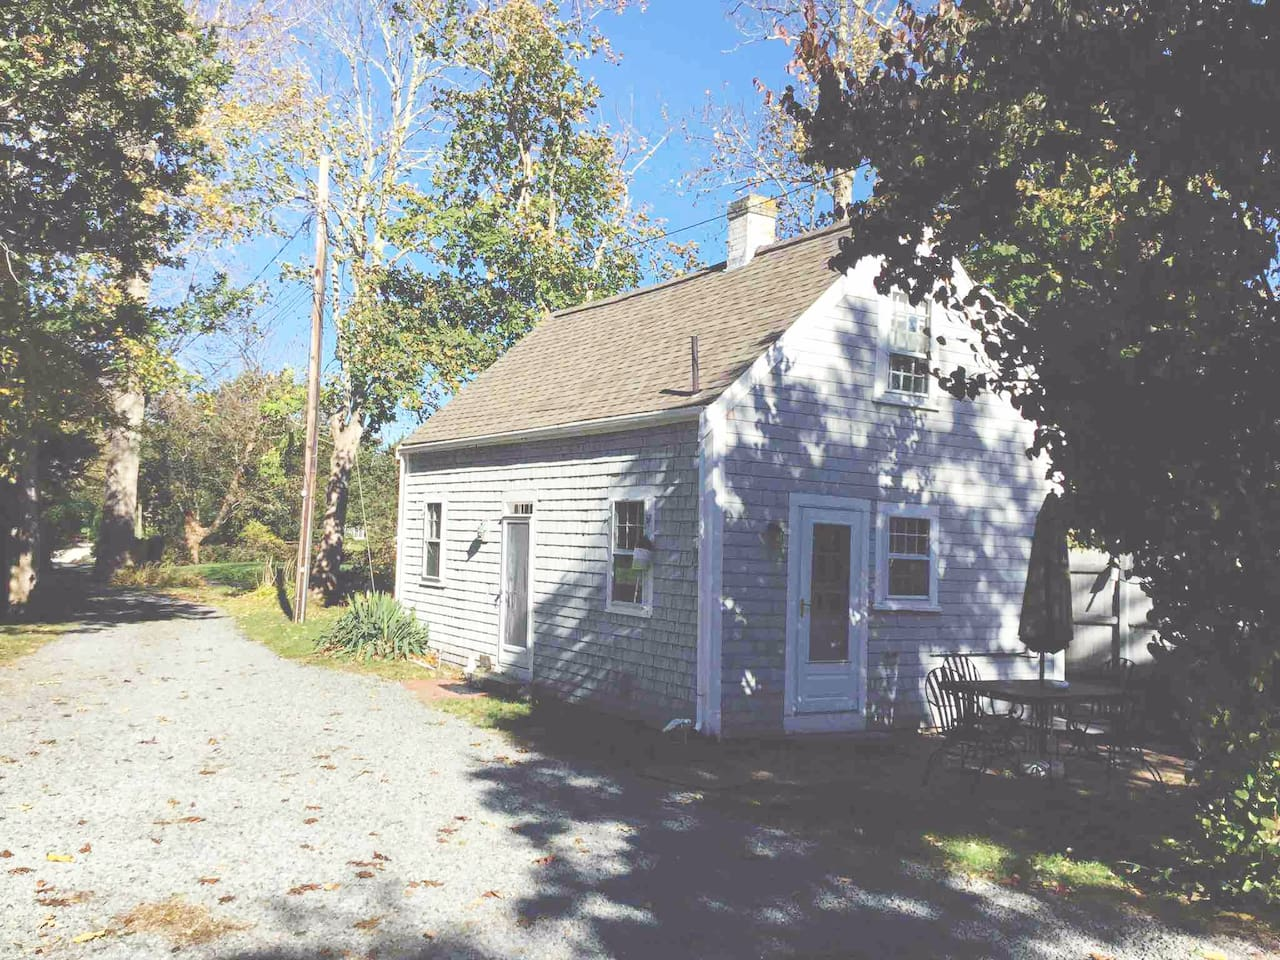 Genuine Cape Cod cottage with a patio and outdoor shower with hot and cold water.  Short walk into town or to saltwater Cape Cod Bay beaches.  Near famous Mayflower Beach.